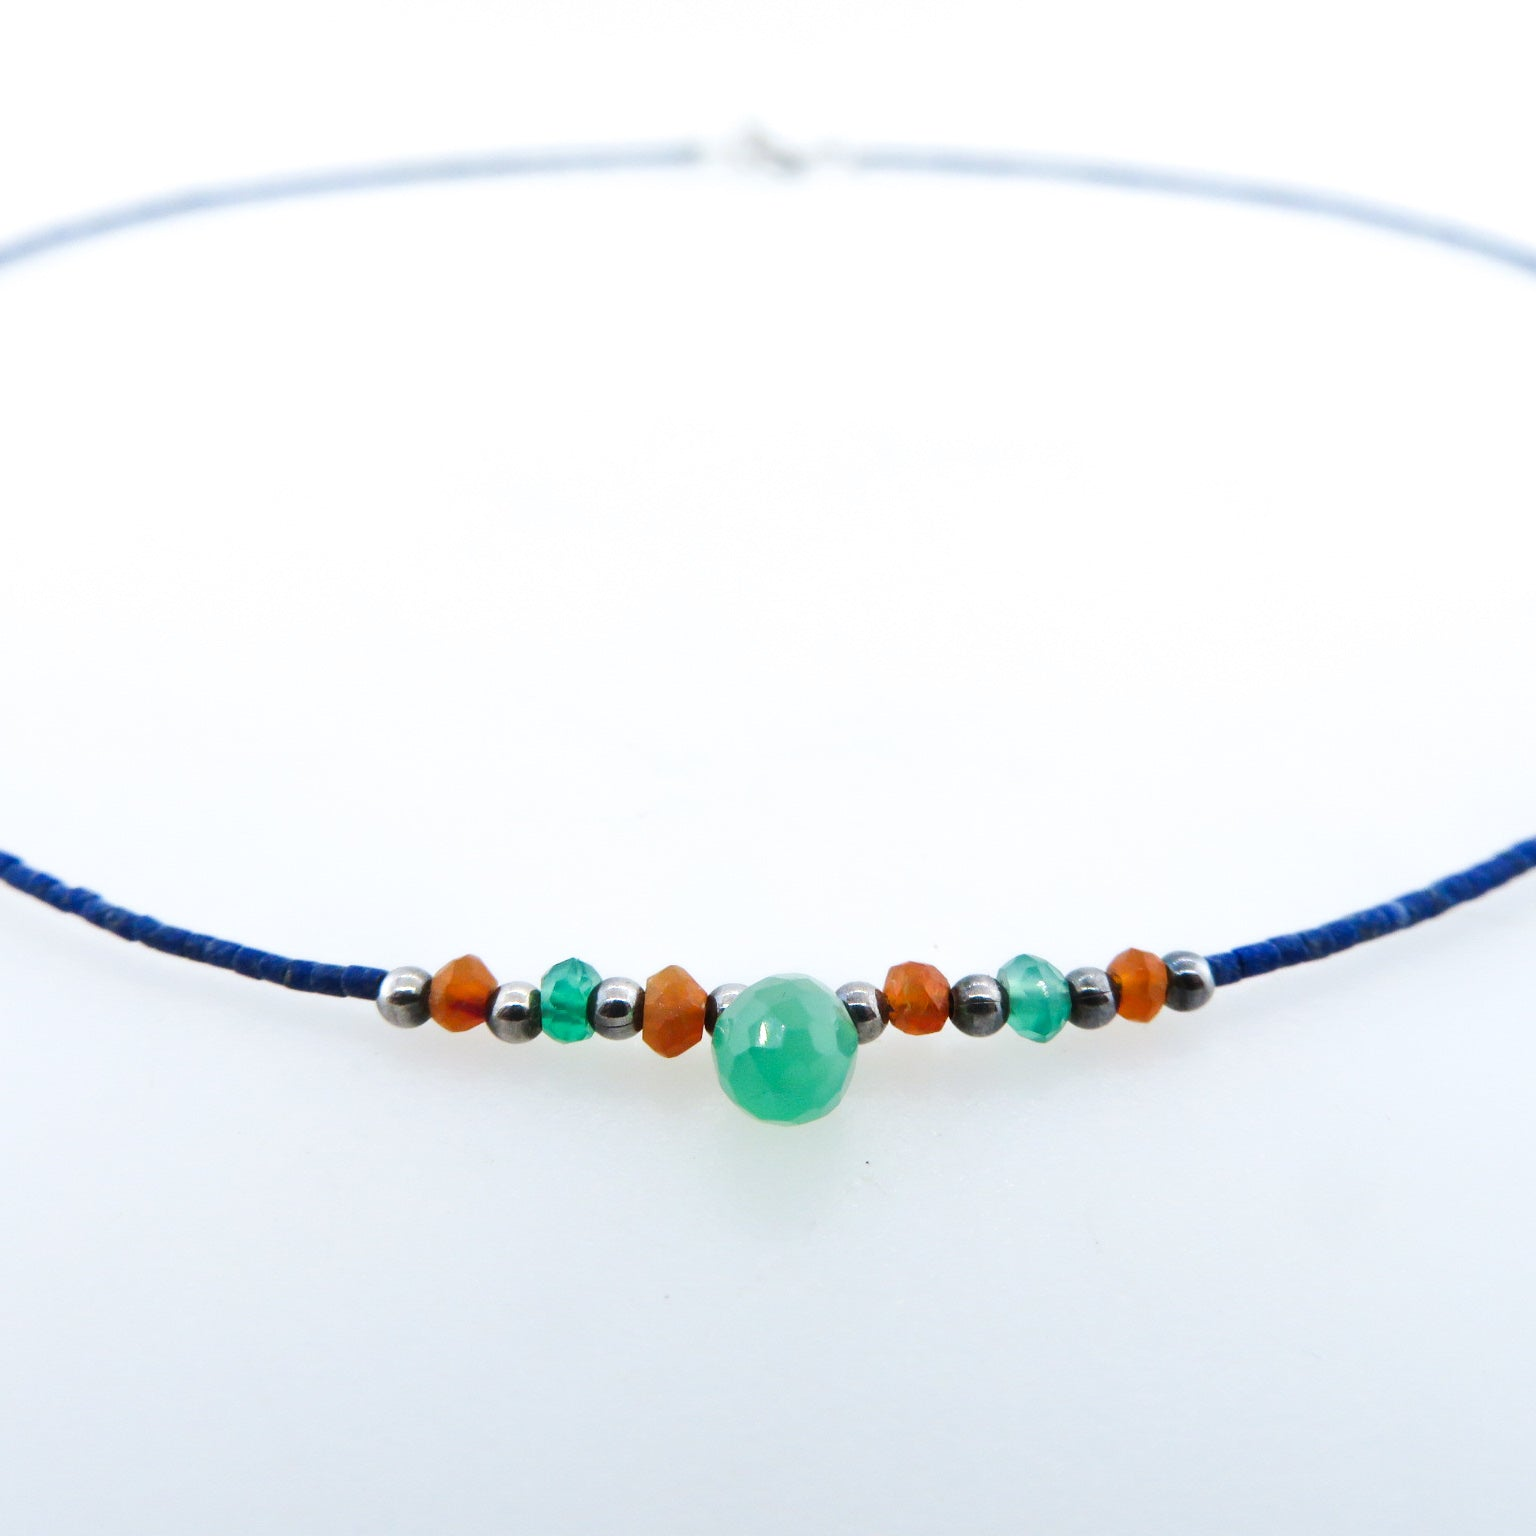 Lapis Lazuli Necklace with Green Onyx, Carnelian and Silver Beads